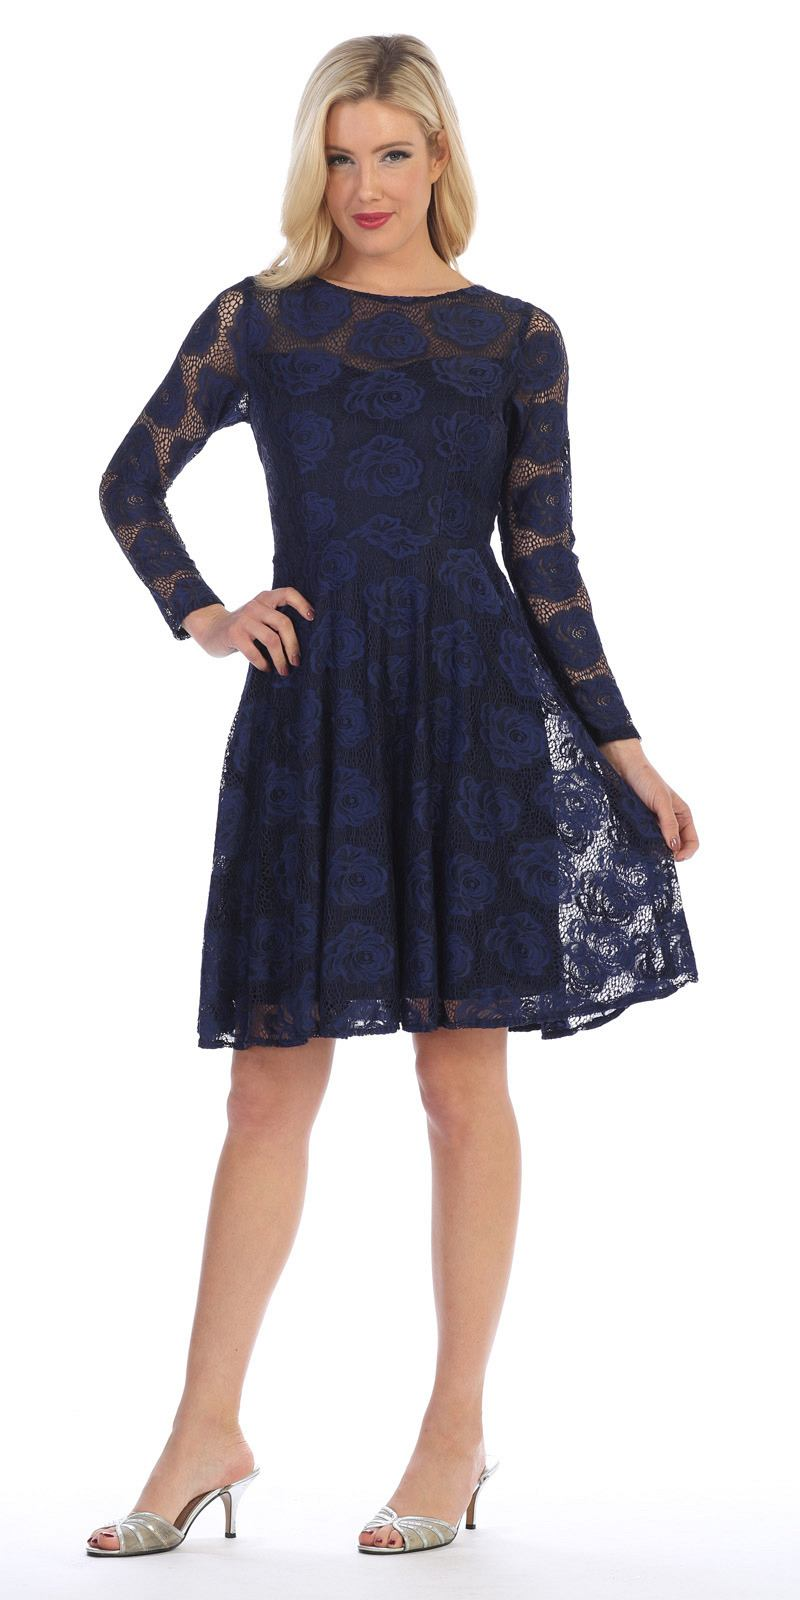 Scoop Neckline Long Sleeve A Line Wedding Guest Short Dress Navy Blue